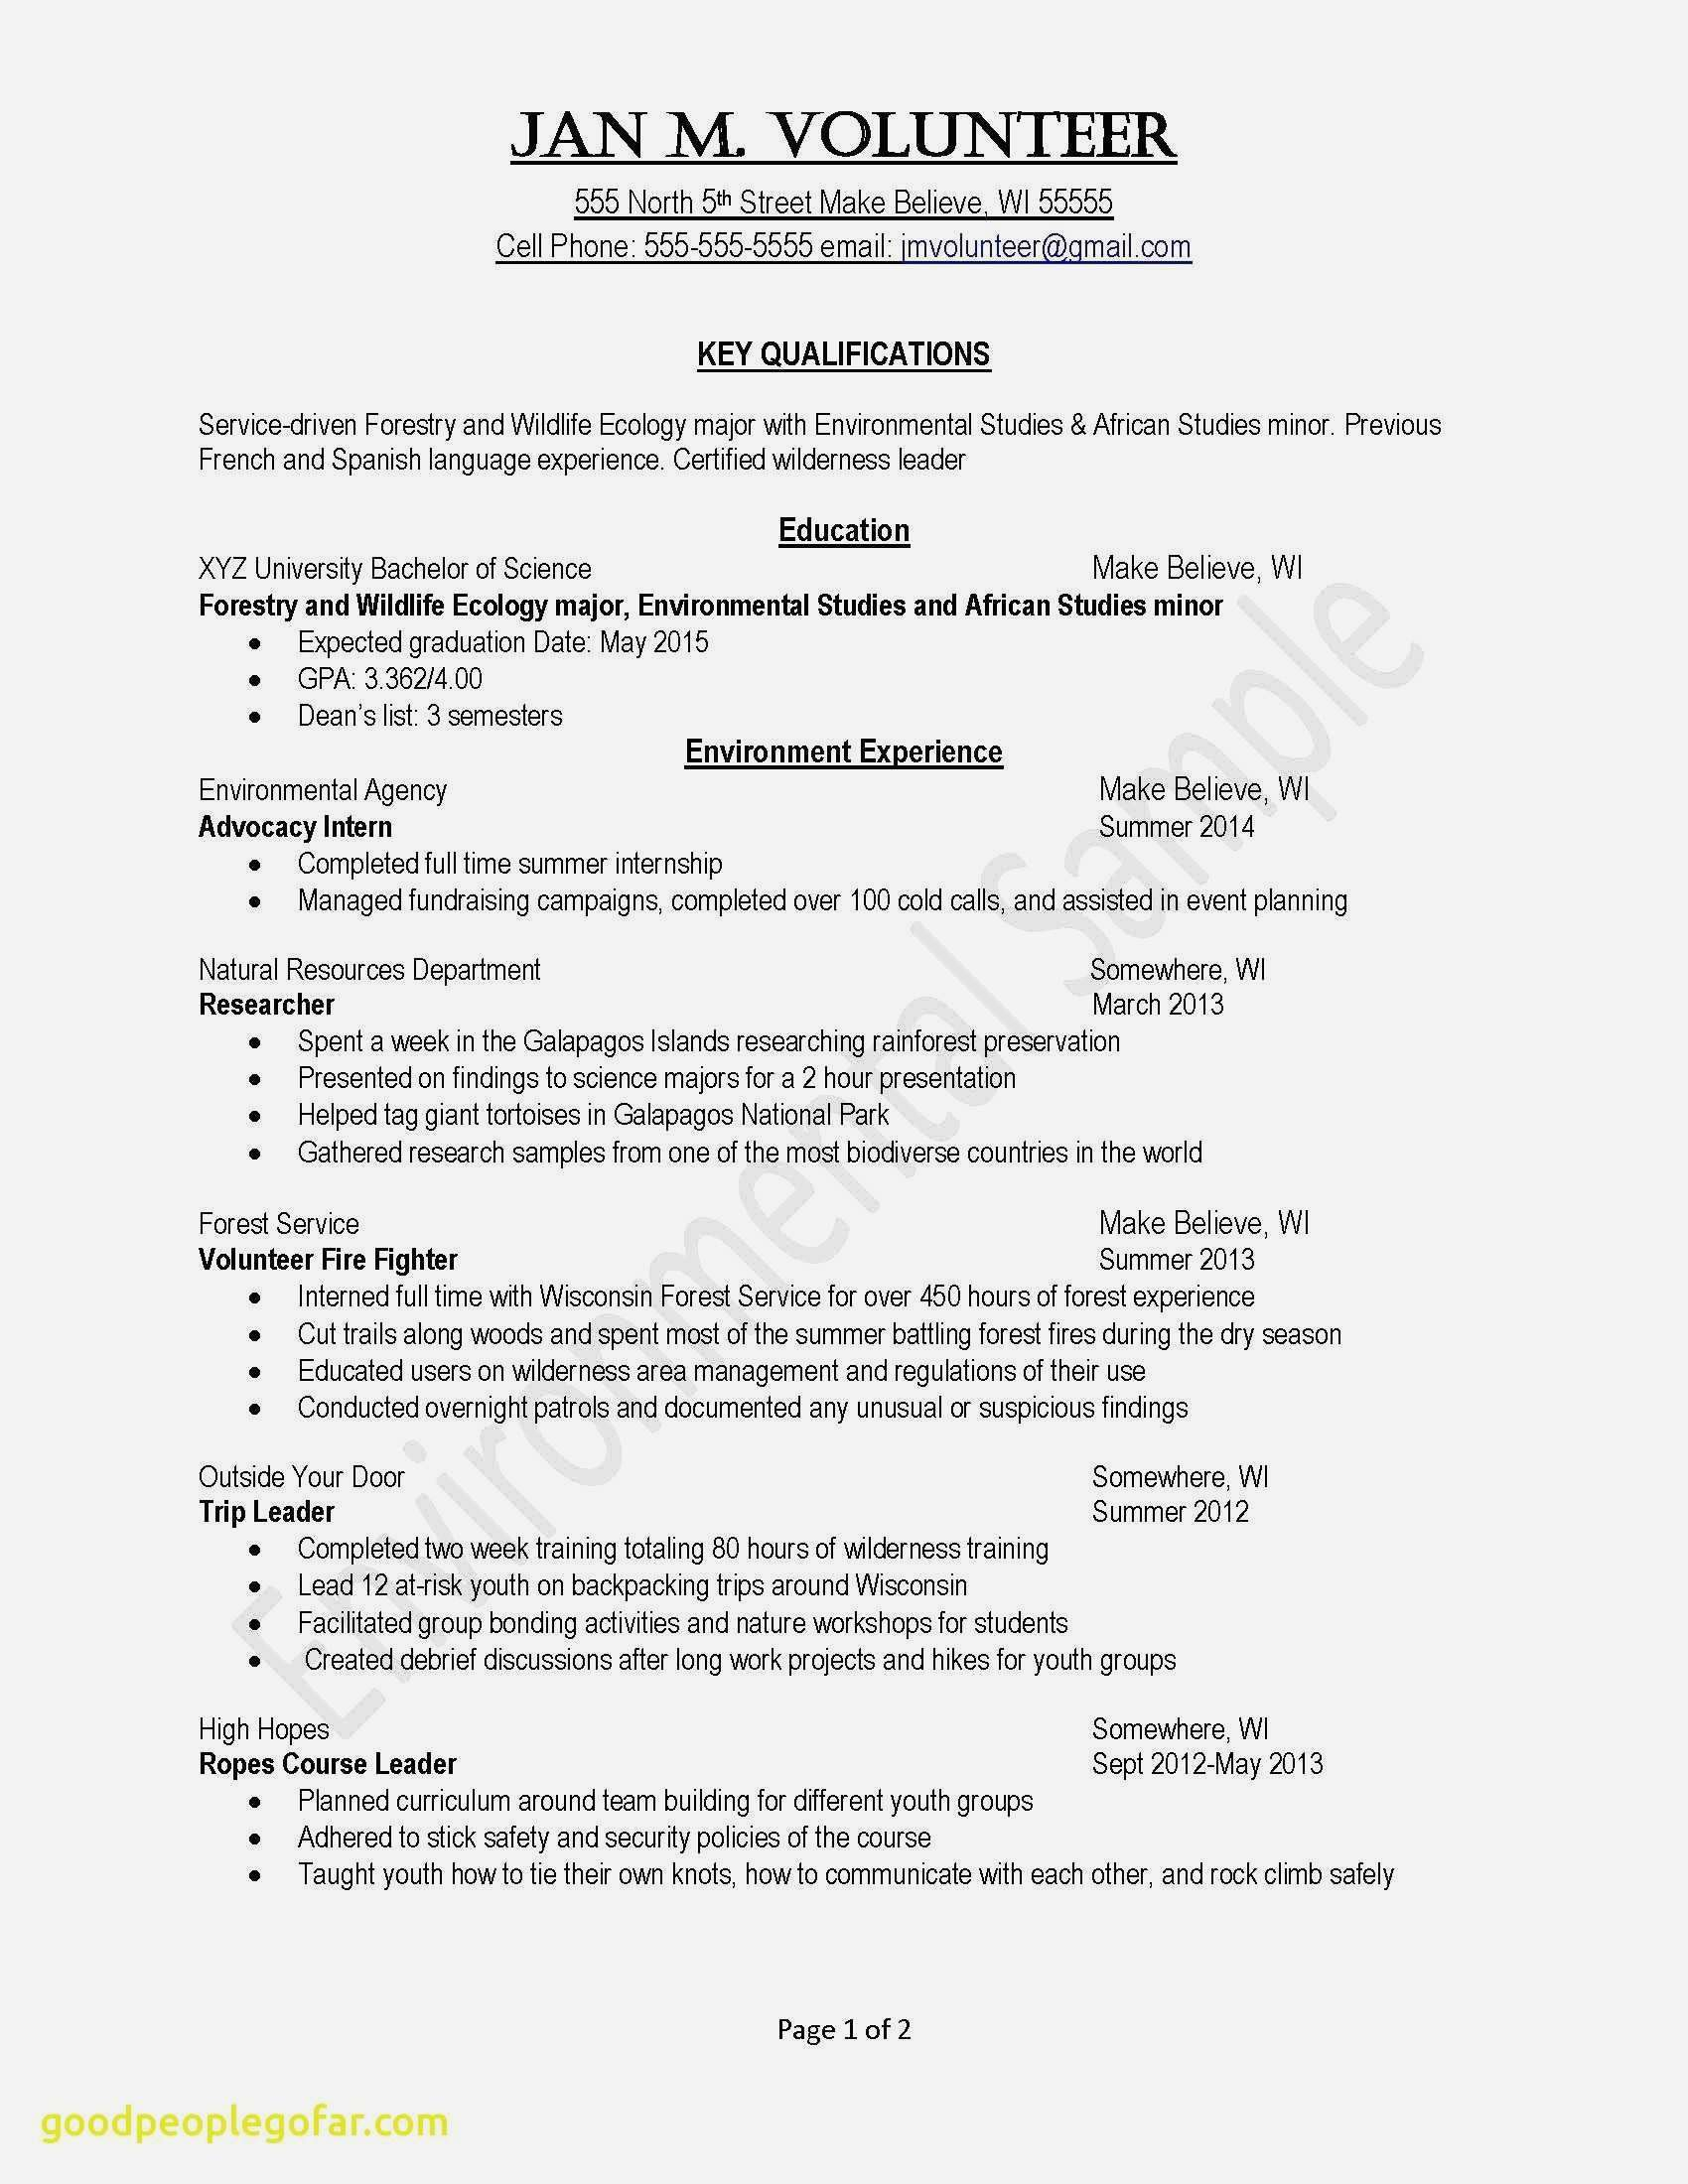 List Of Core Competencies Resume Examples - Fantastic Personal Statement Template